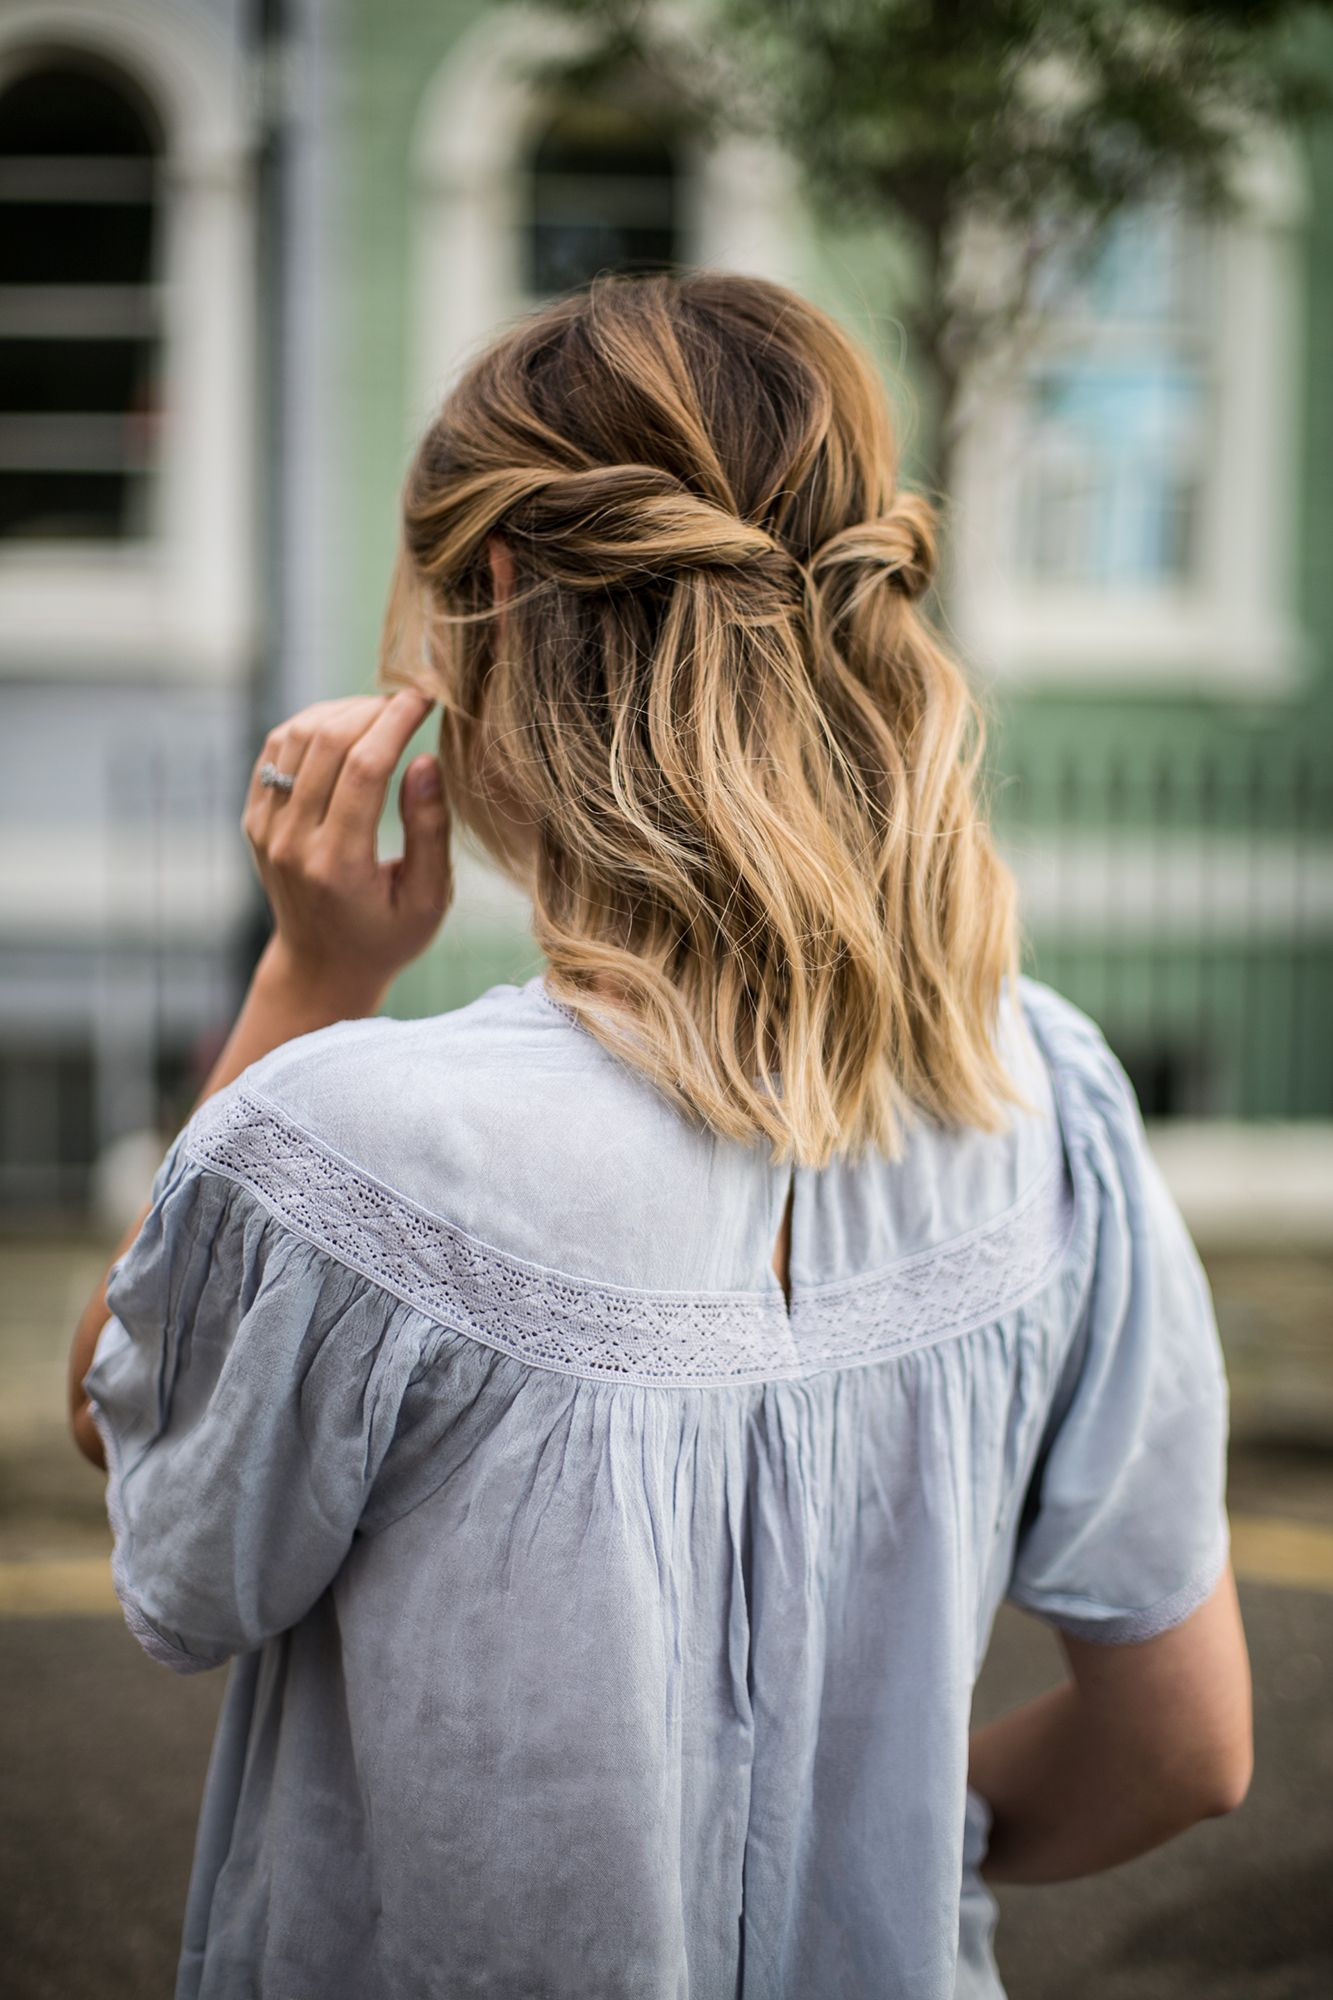 My 3 Favourite Hairstyles for Summer - EJ|STYLE | Prom ...